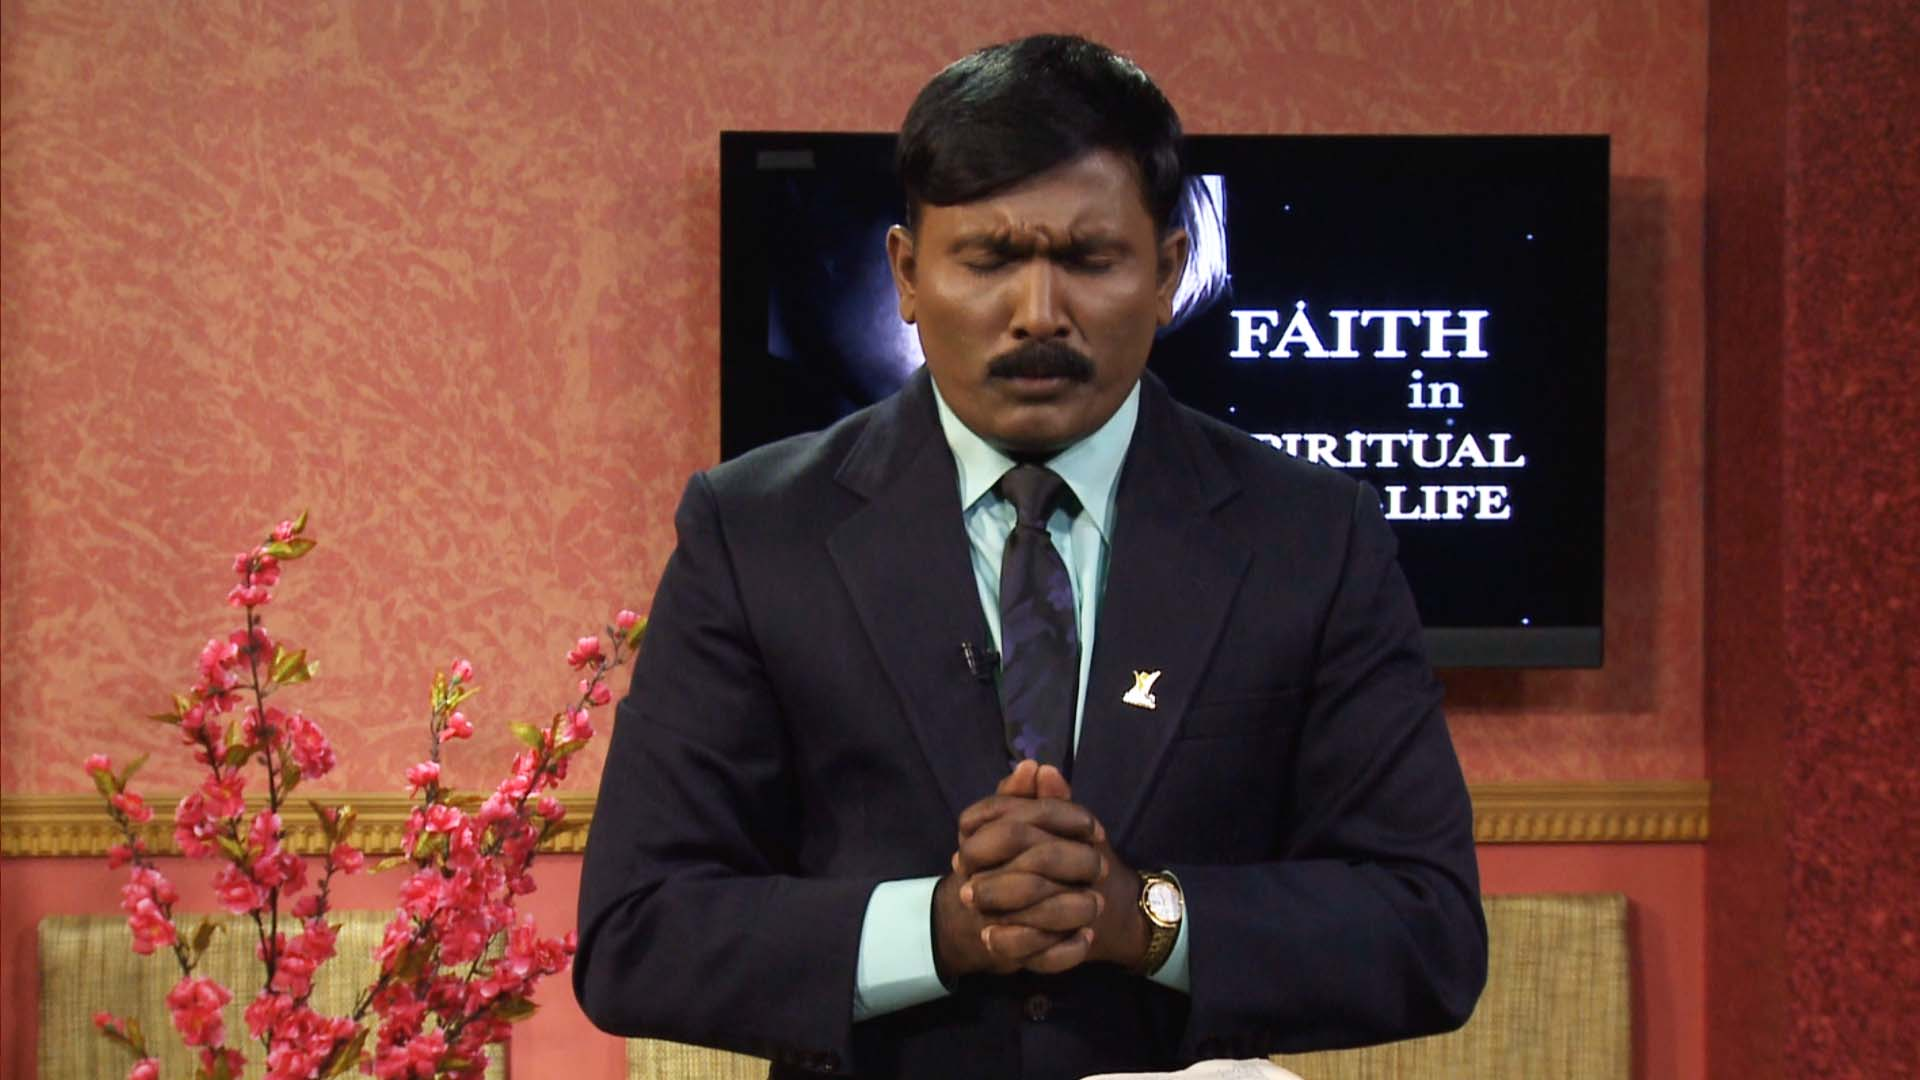 Faith in Spiritual Life